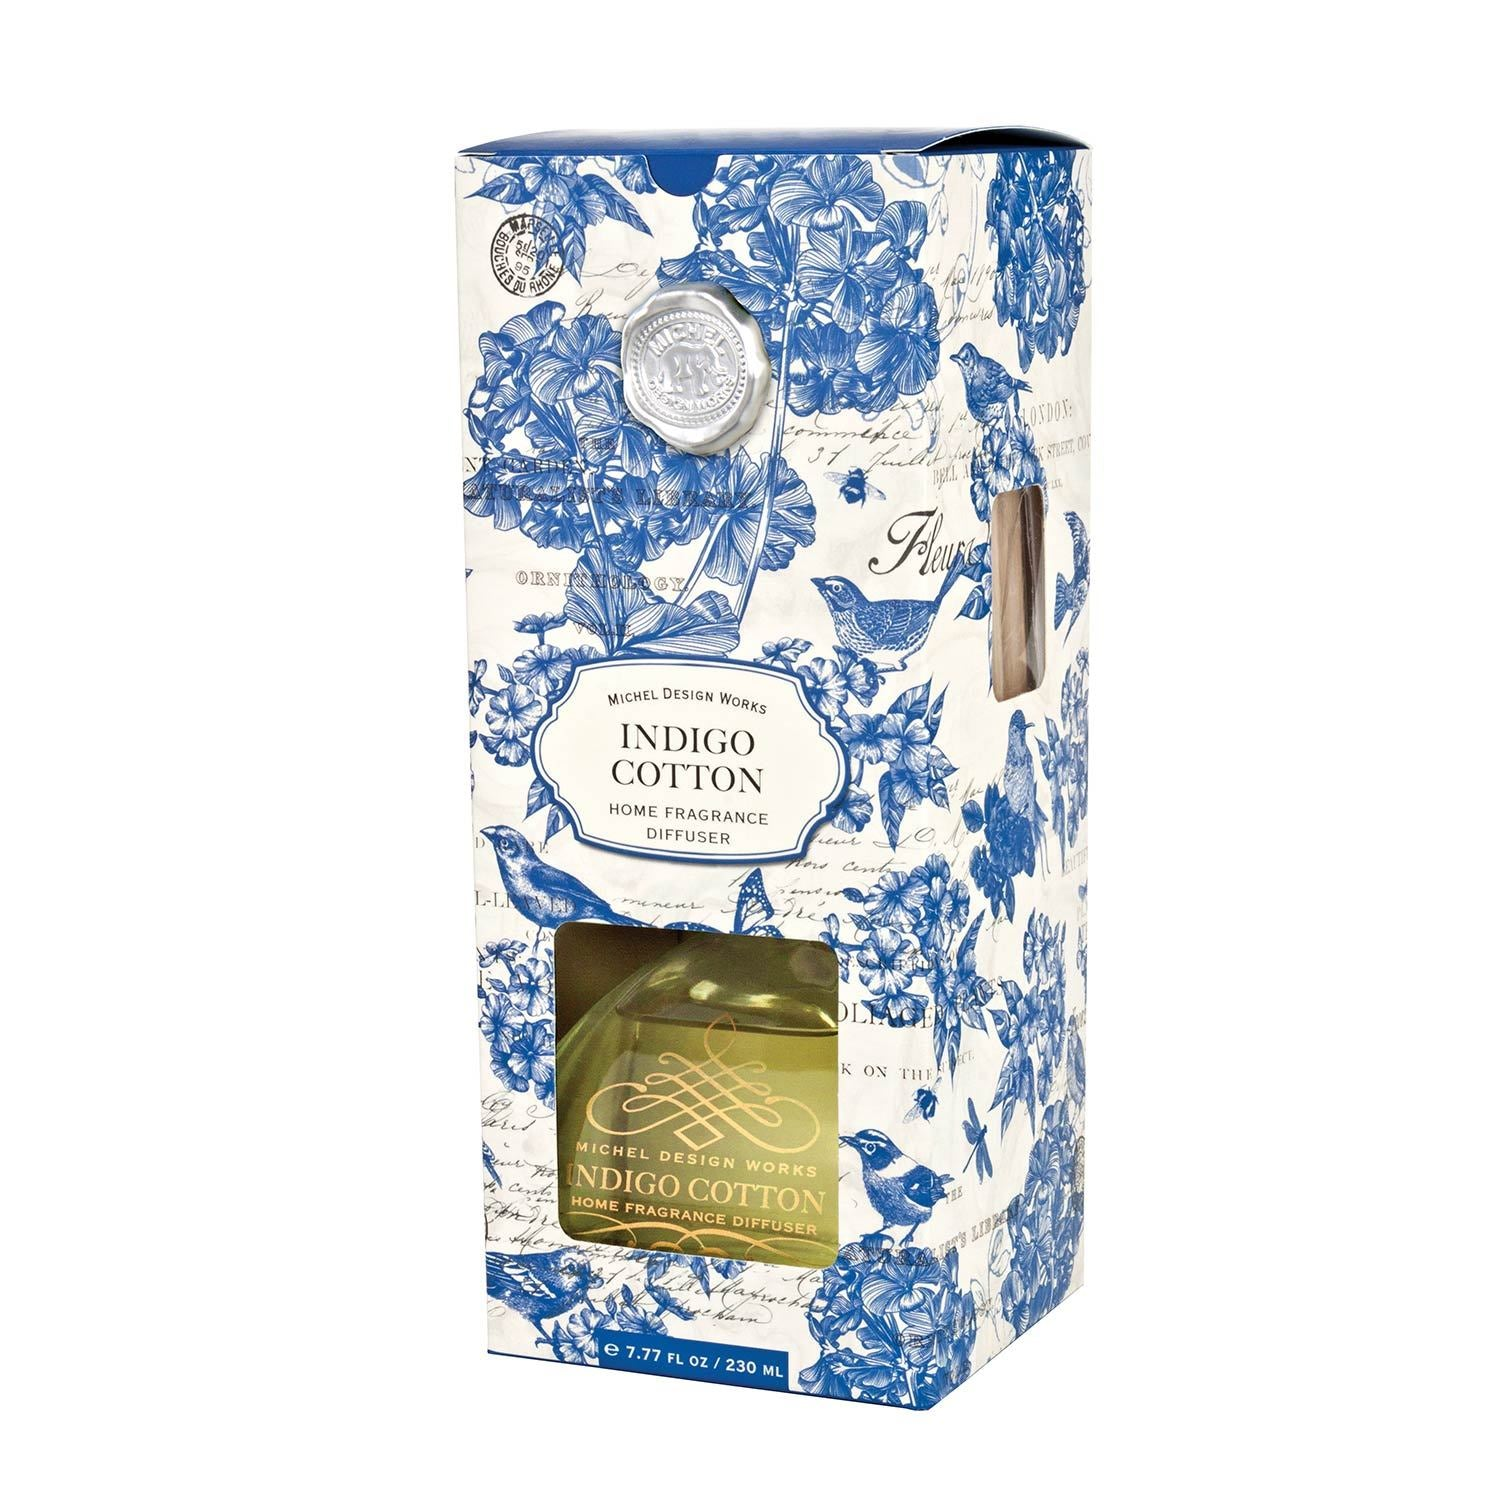 Indigo Cotton Home Fragrance Diffuser